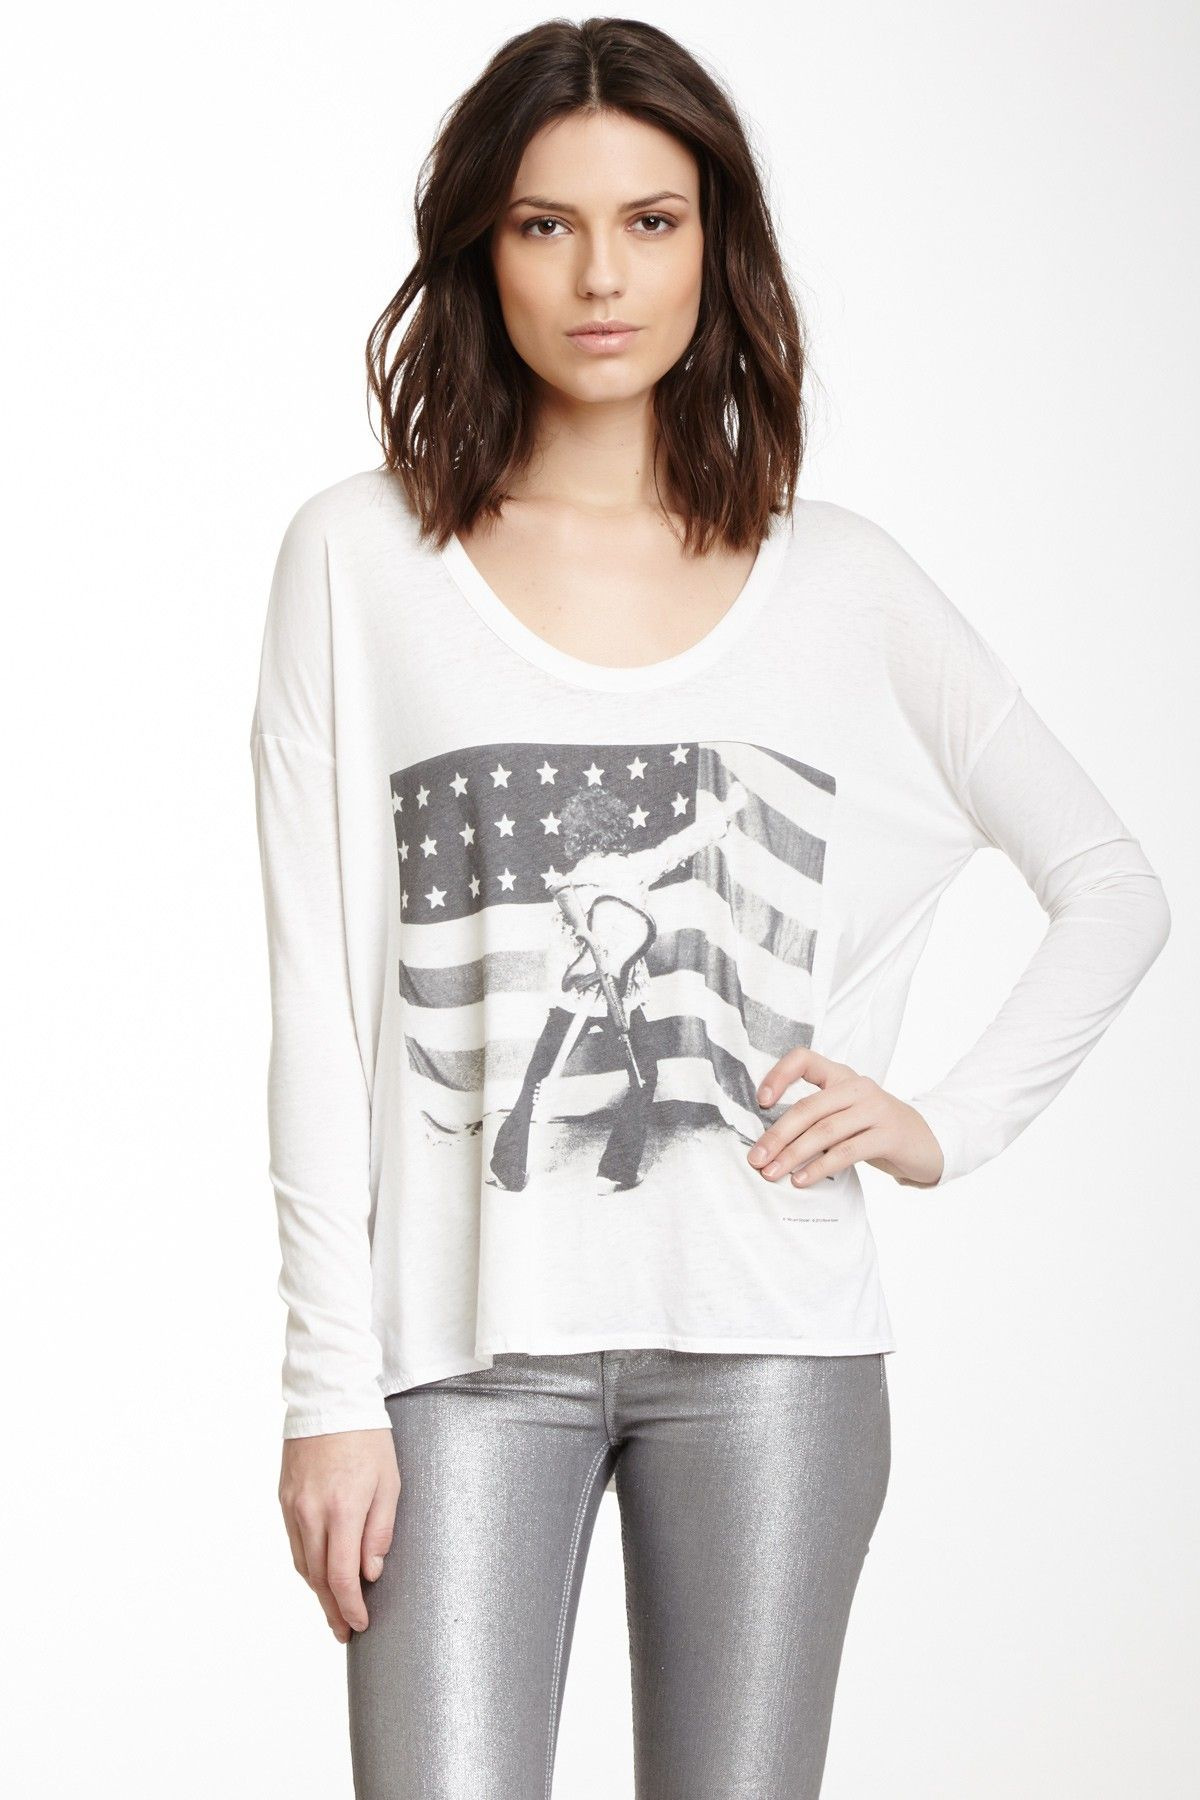 Boxy Flow Jersey Tee// Fashion, Casual chic style, Clothes